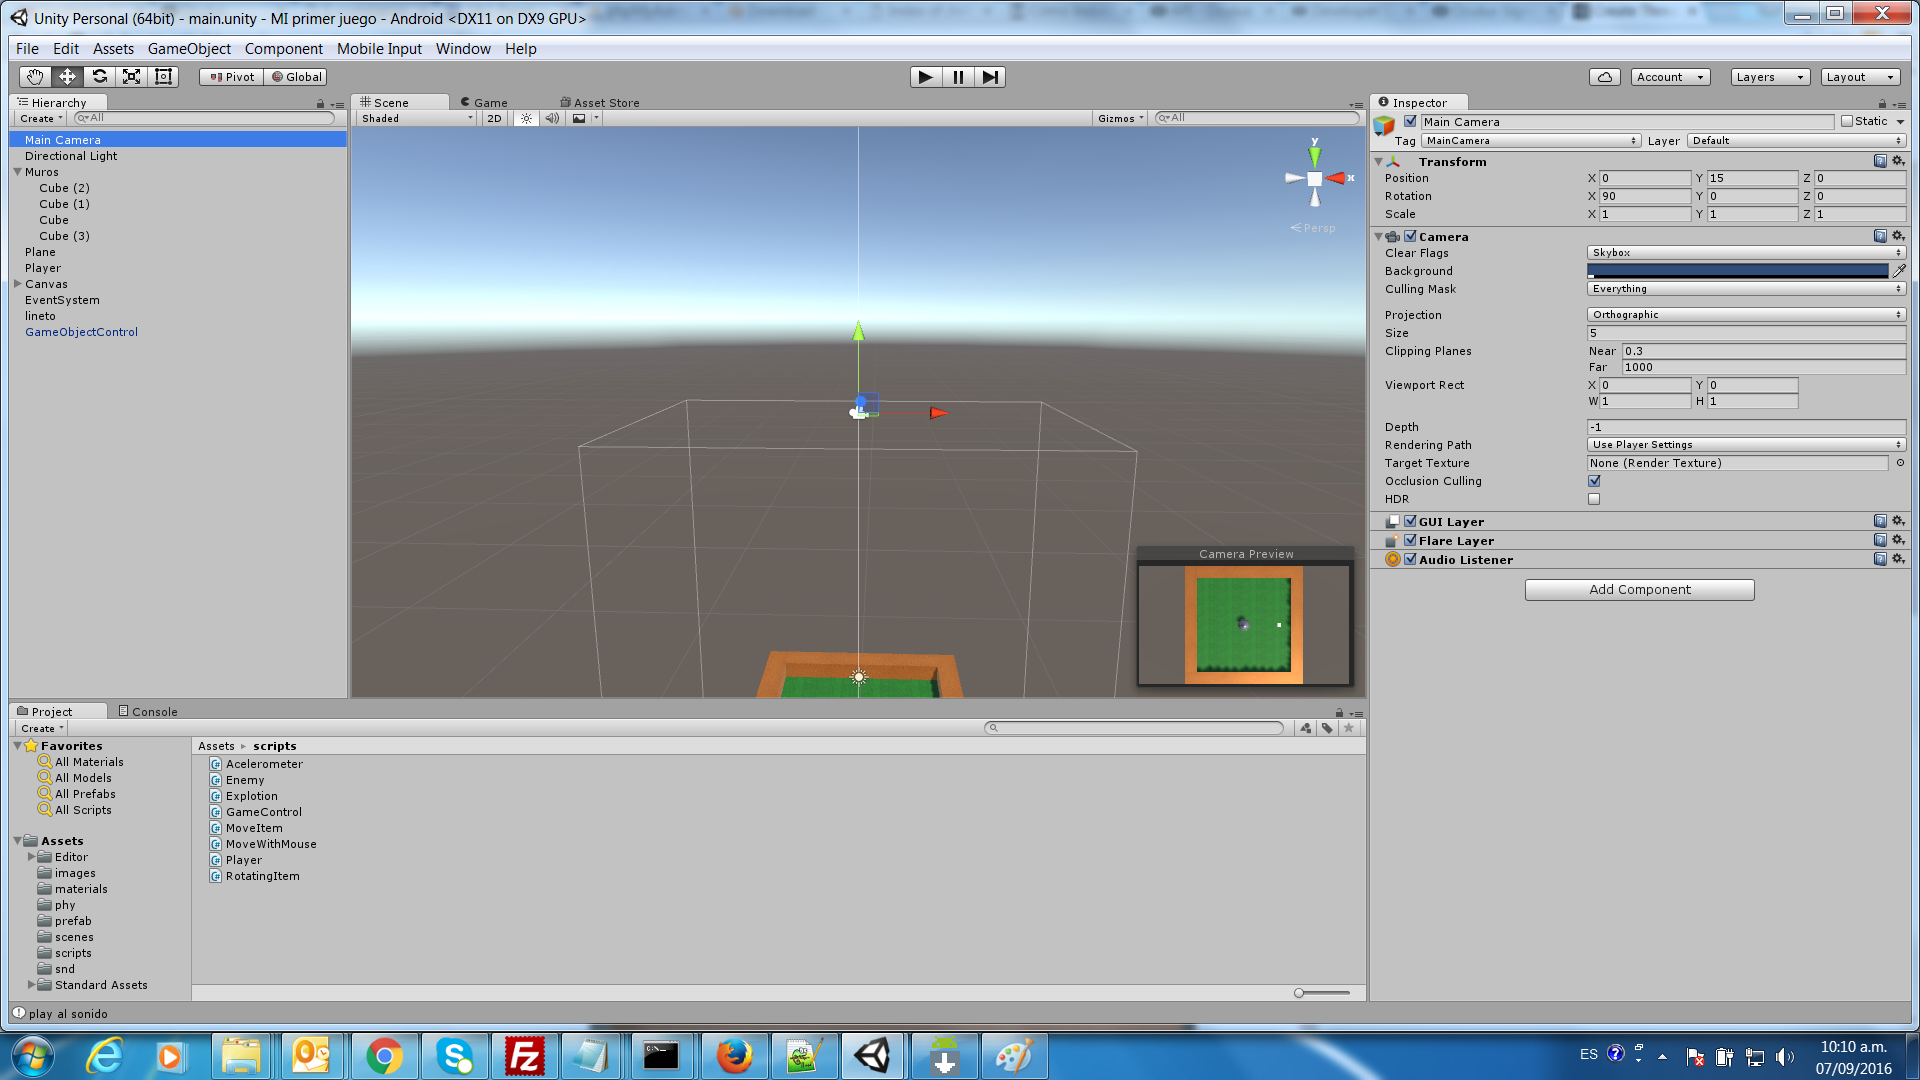 Background image y position - Get The Current X Y Z Of The Unity Word Using The Mouse Position